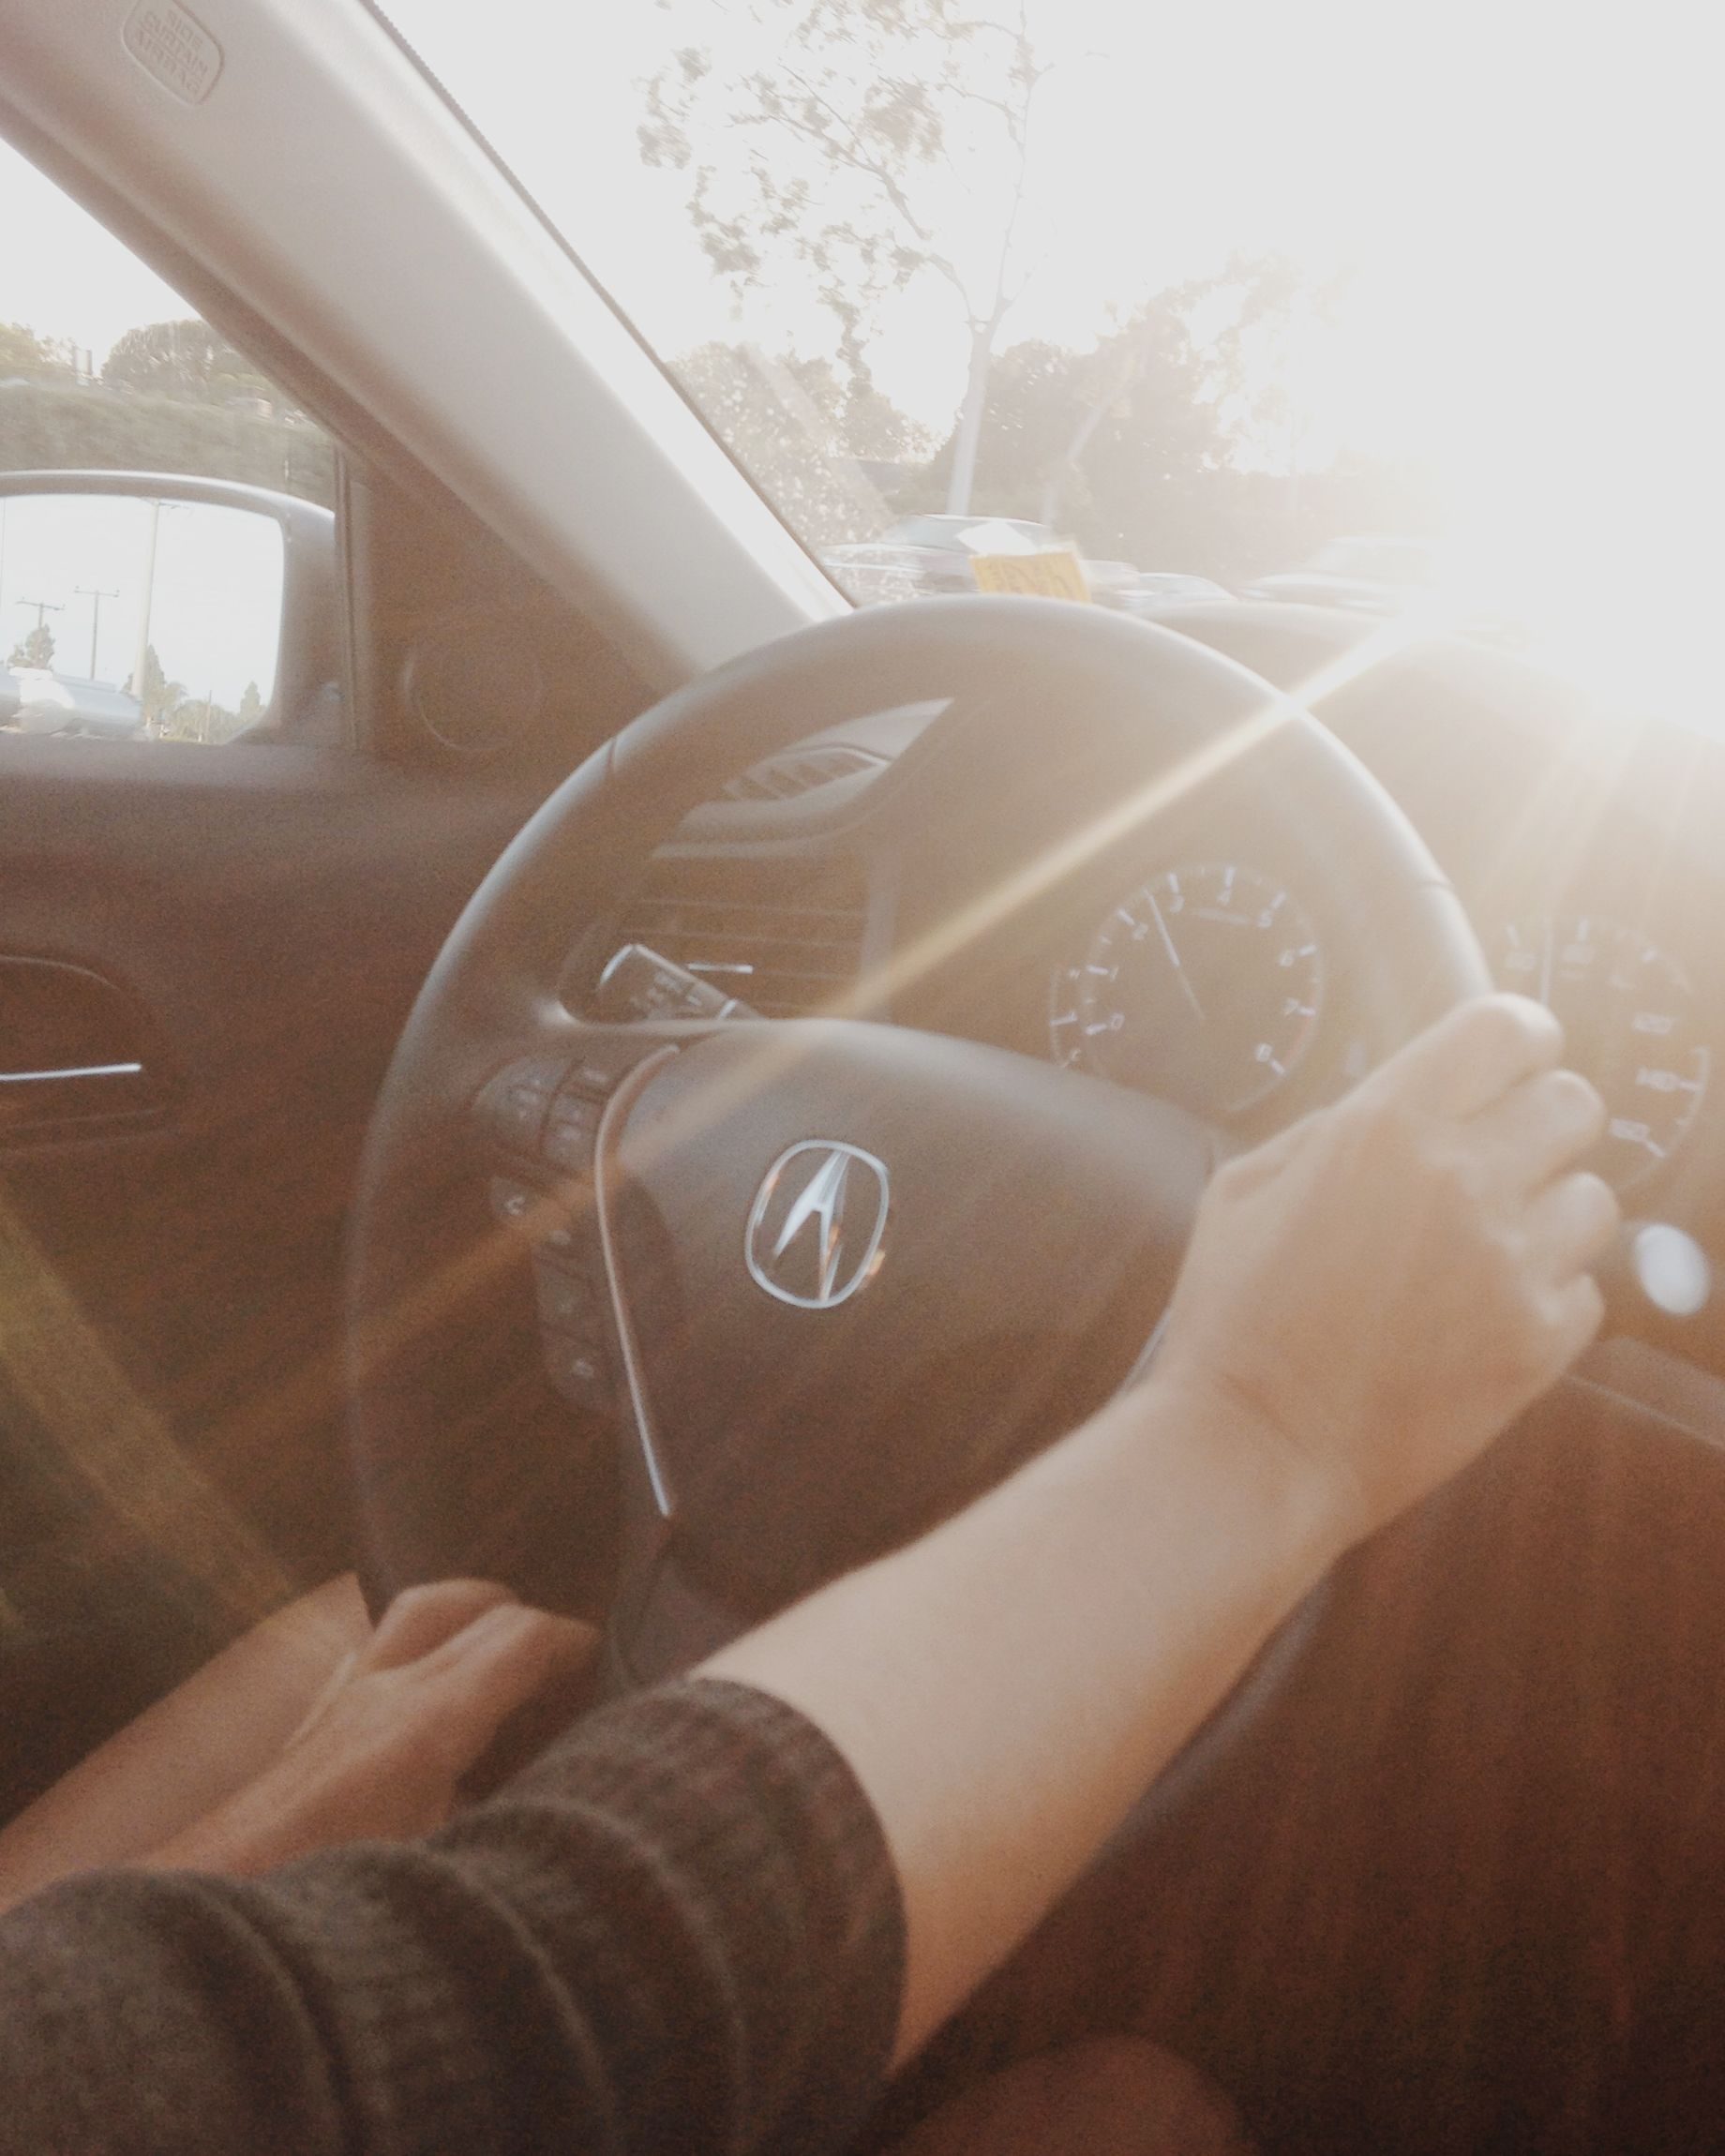 Where Would You Go With Friends In Your Acura ILX? We